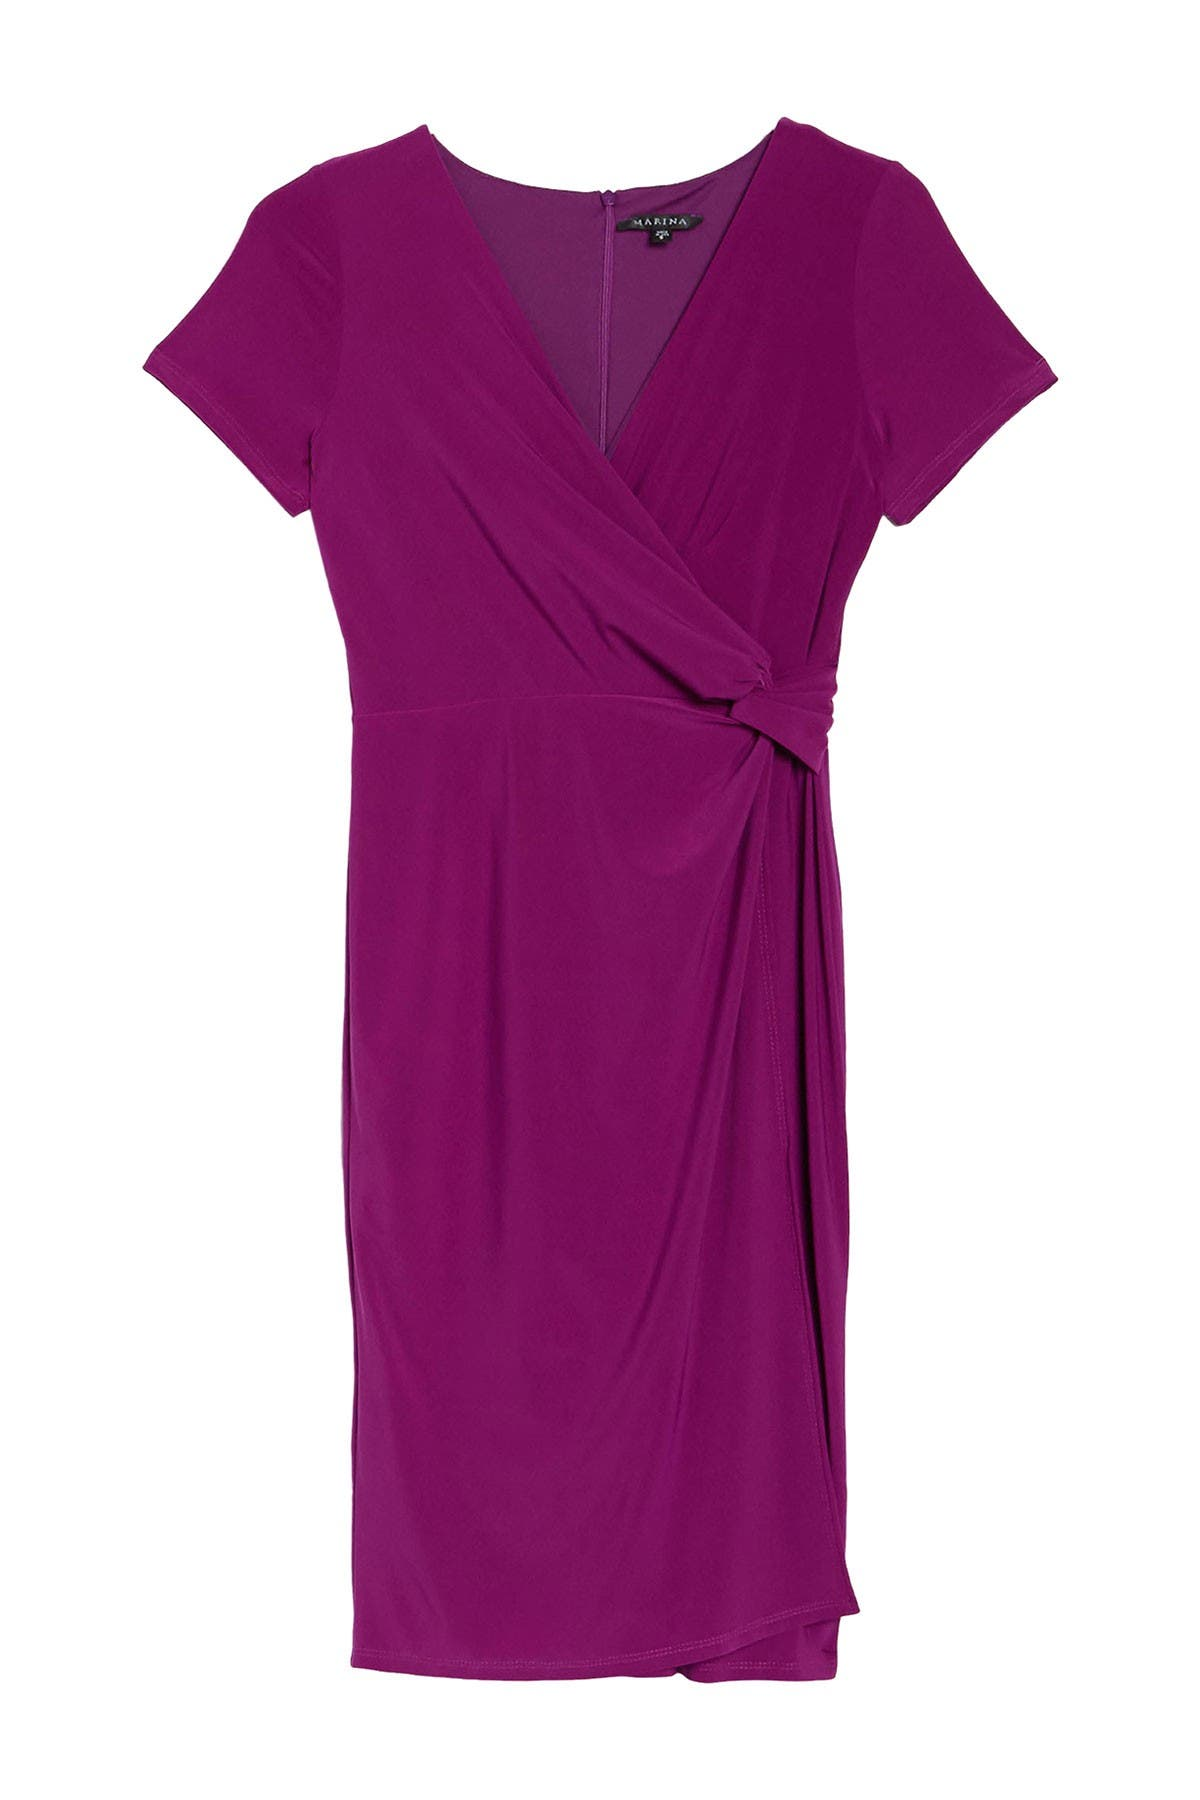 Image of Onyx Nite Ity Ruched Wrap Dress